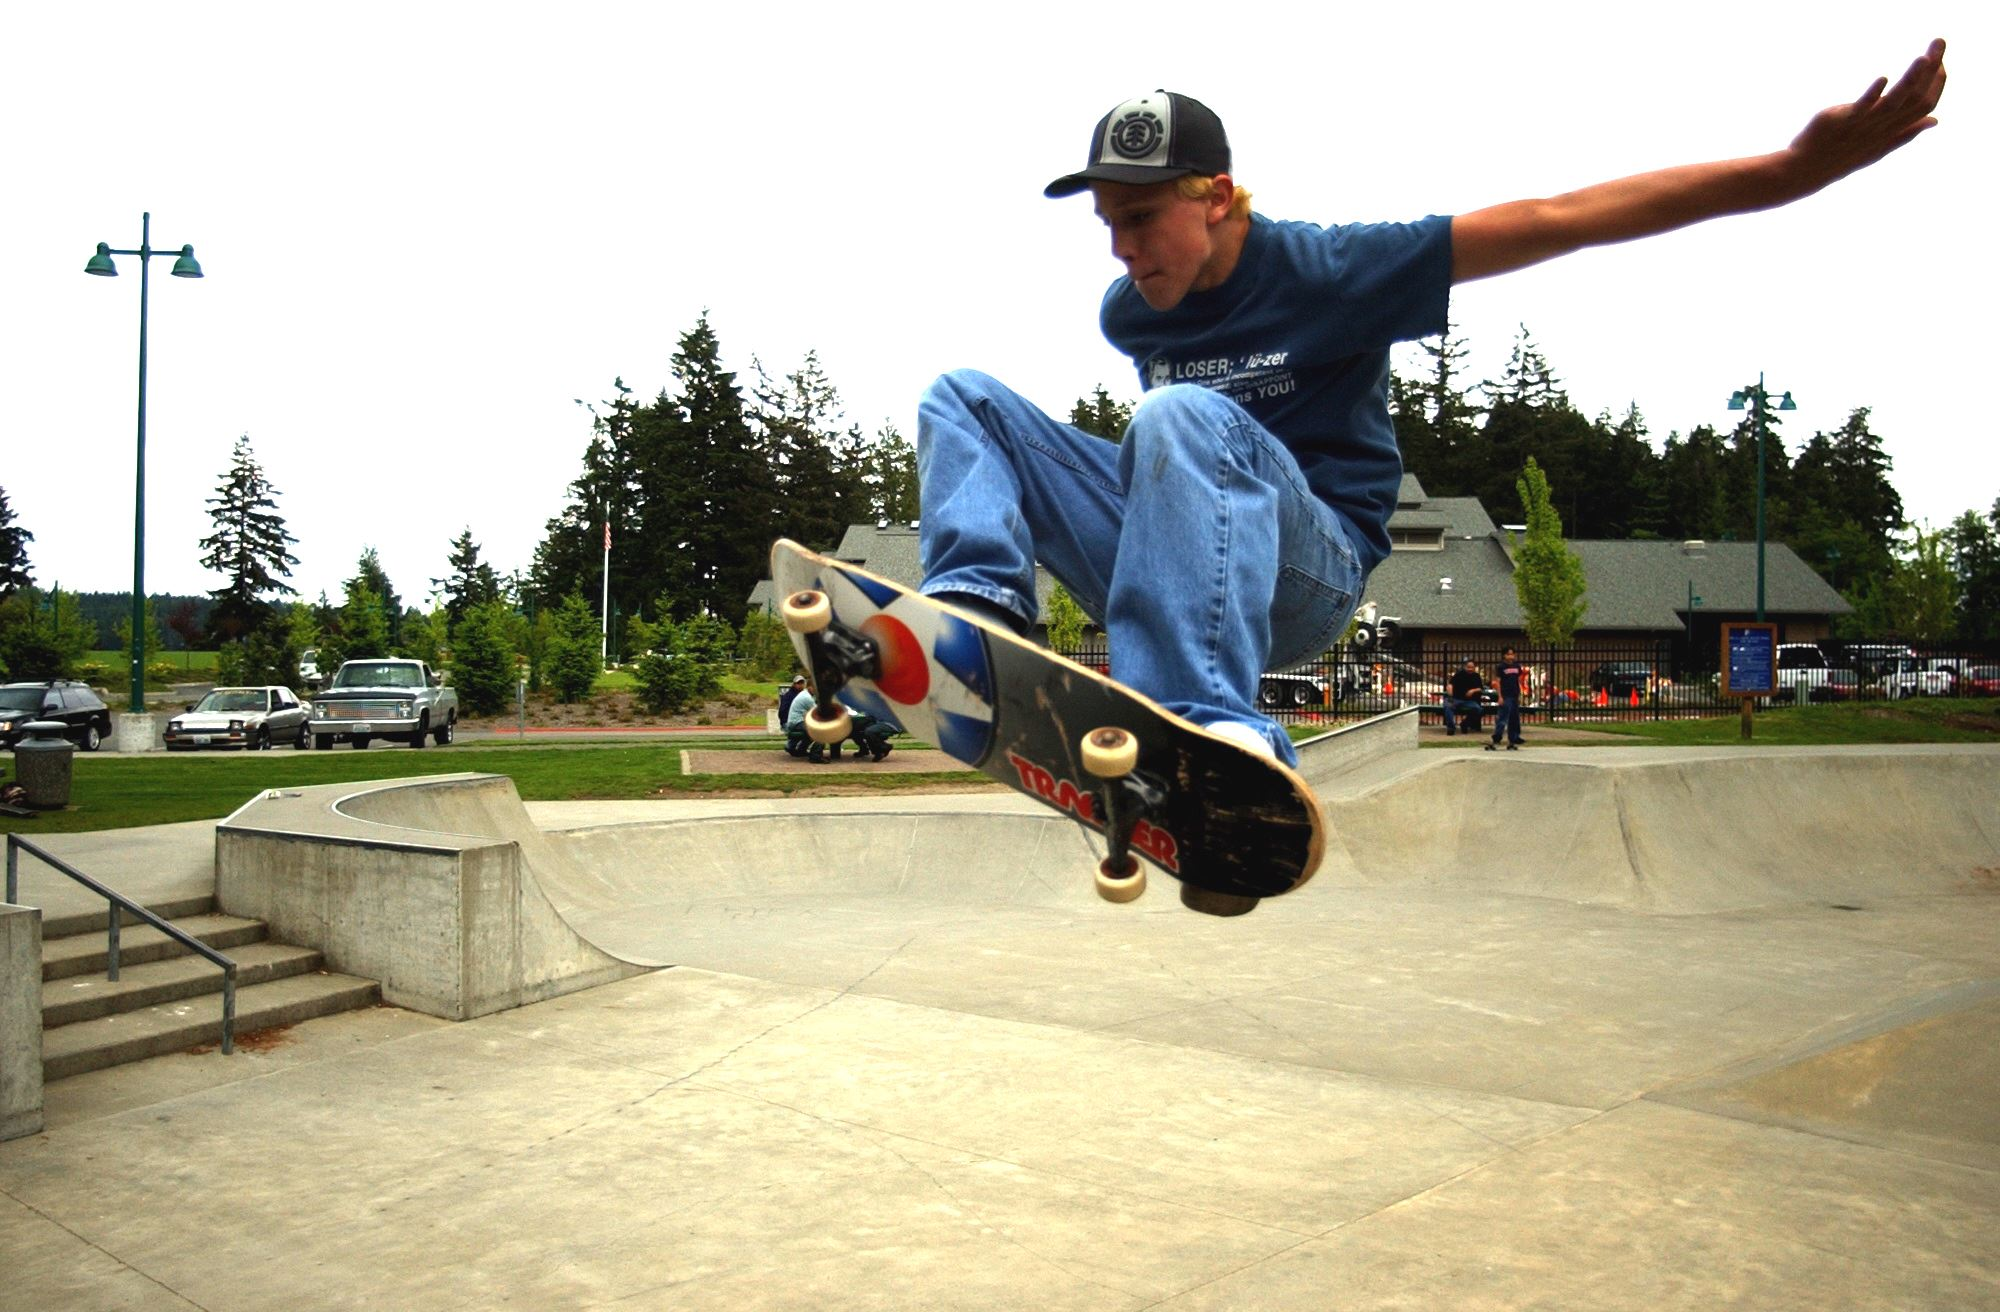 Skate Park Area with Skater in Mid-Air